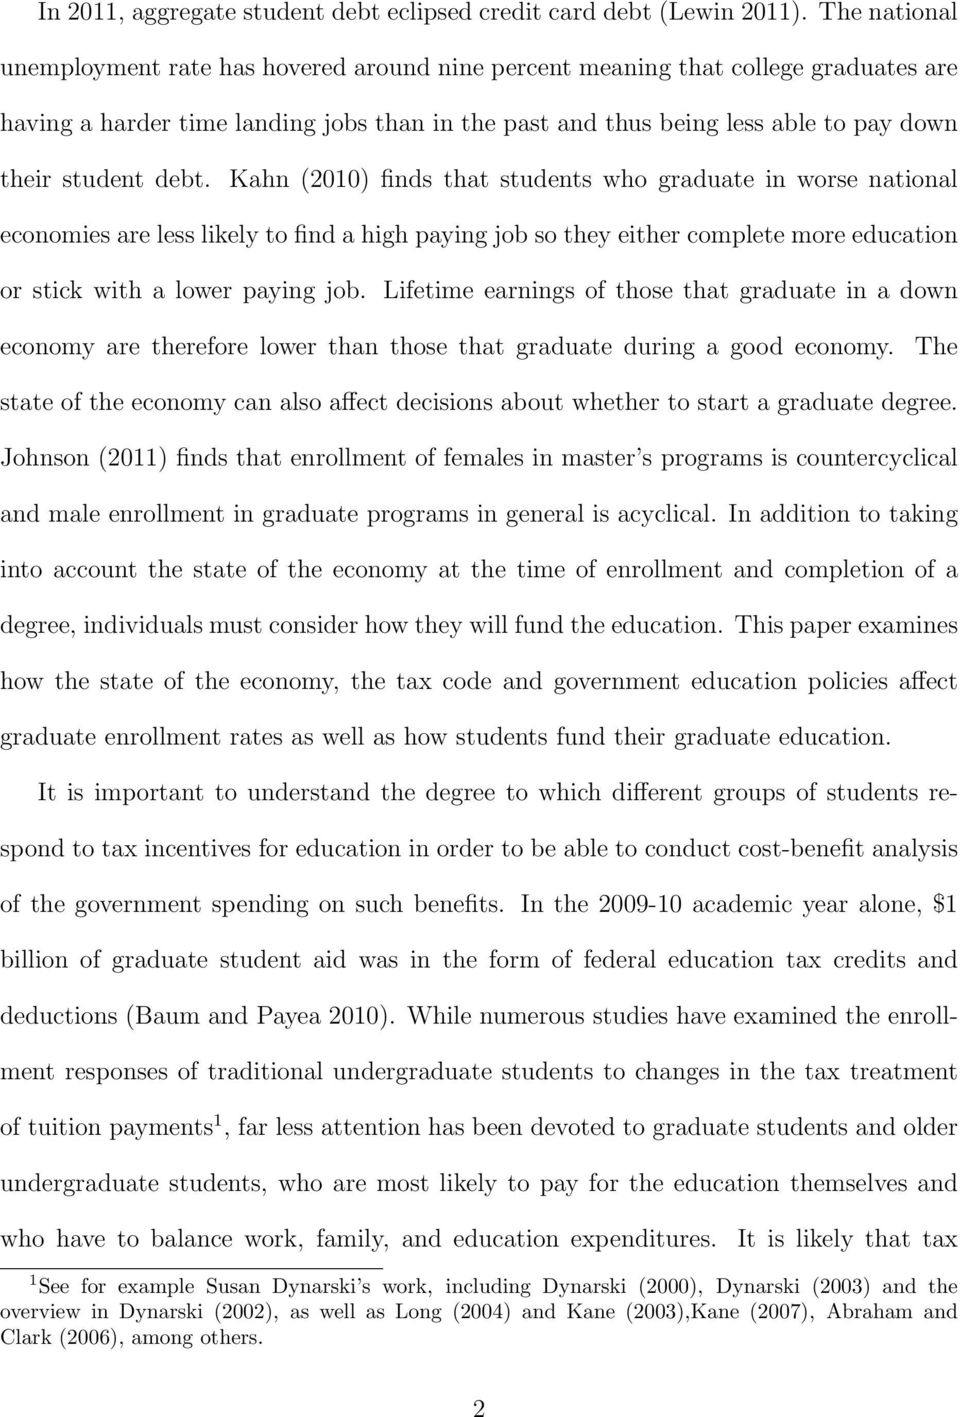 debt. Kahn (2010) finds that students who graduate in worse national economies are less likely to find a high paying job so they either complete more education or stick with a lower paying job.